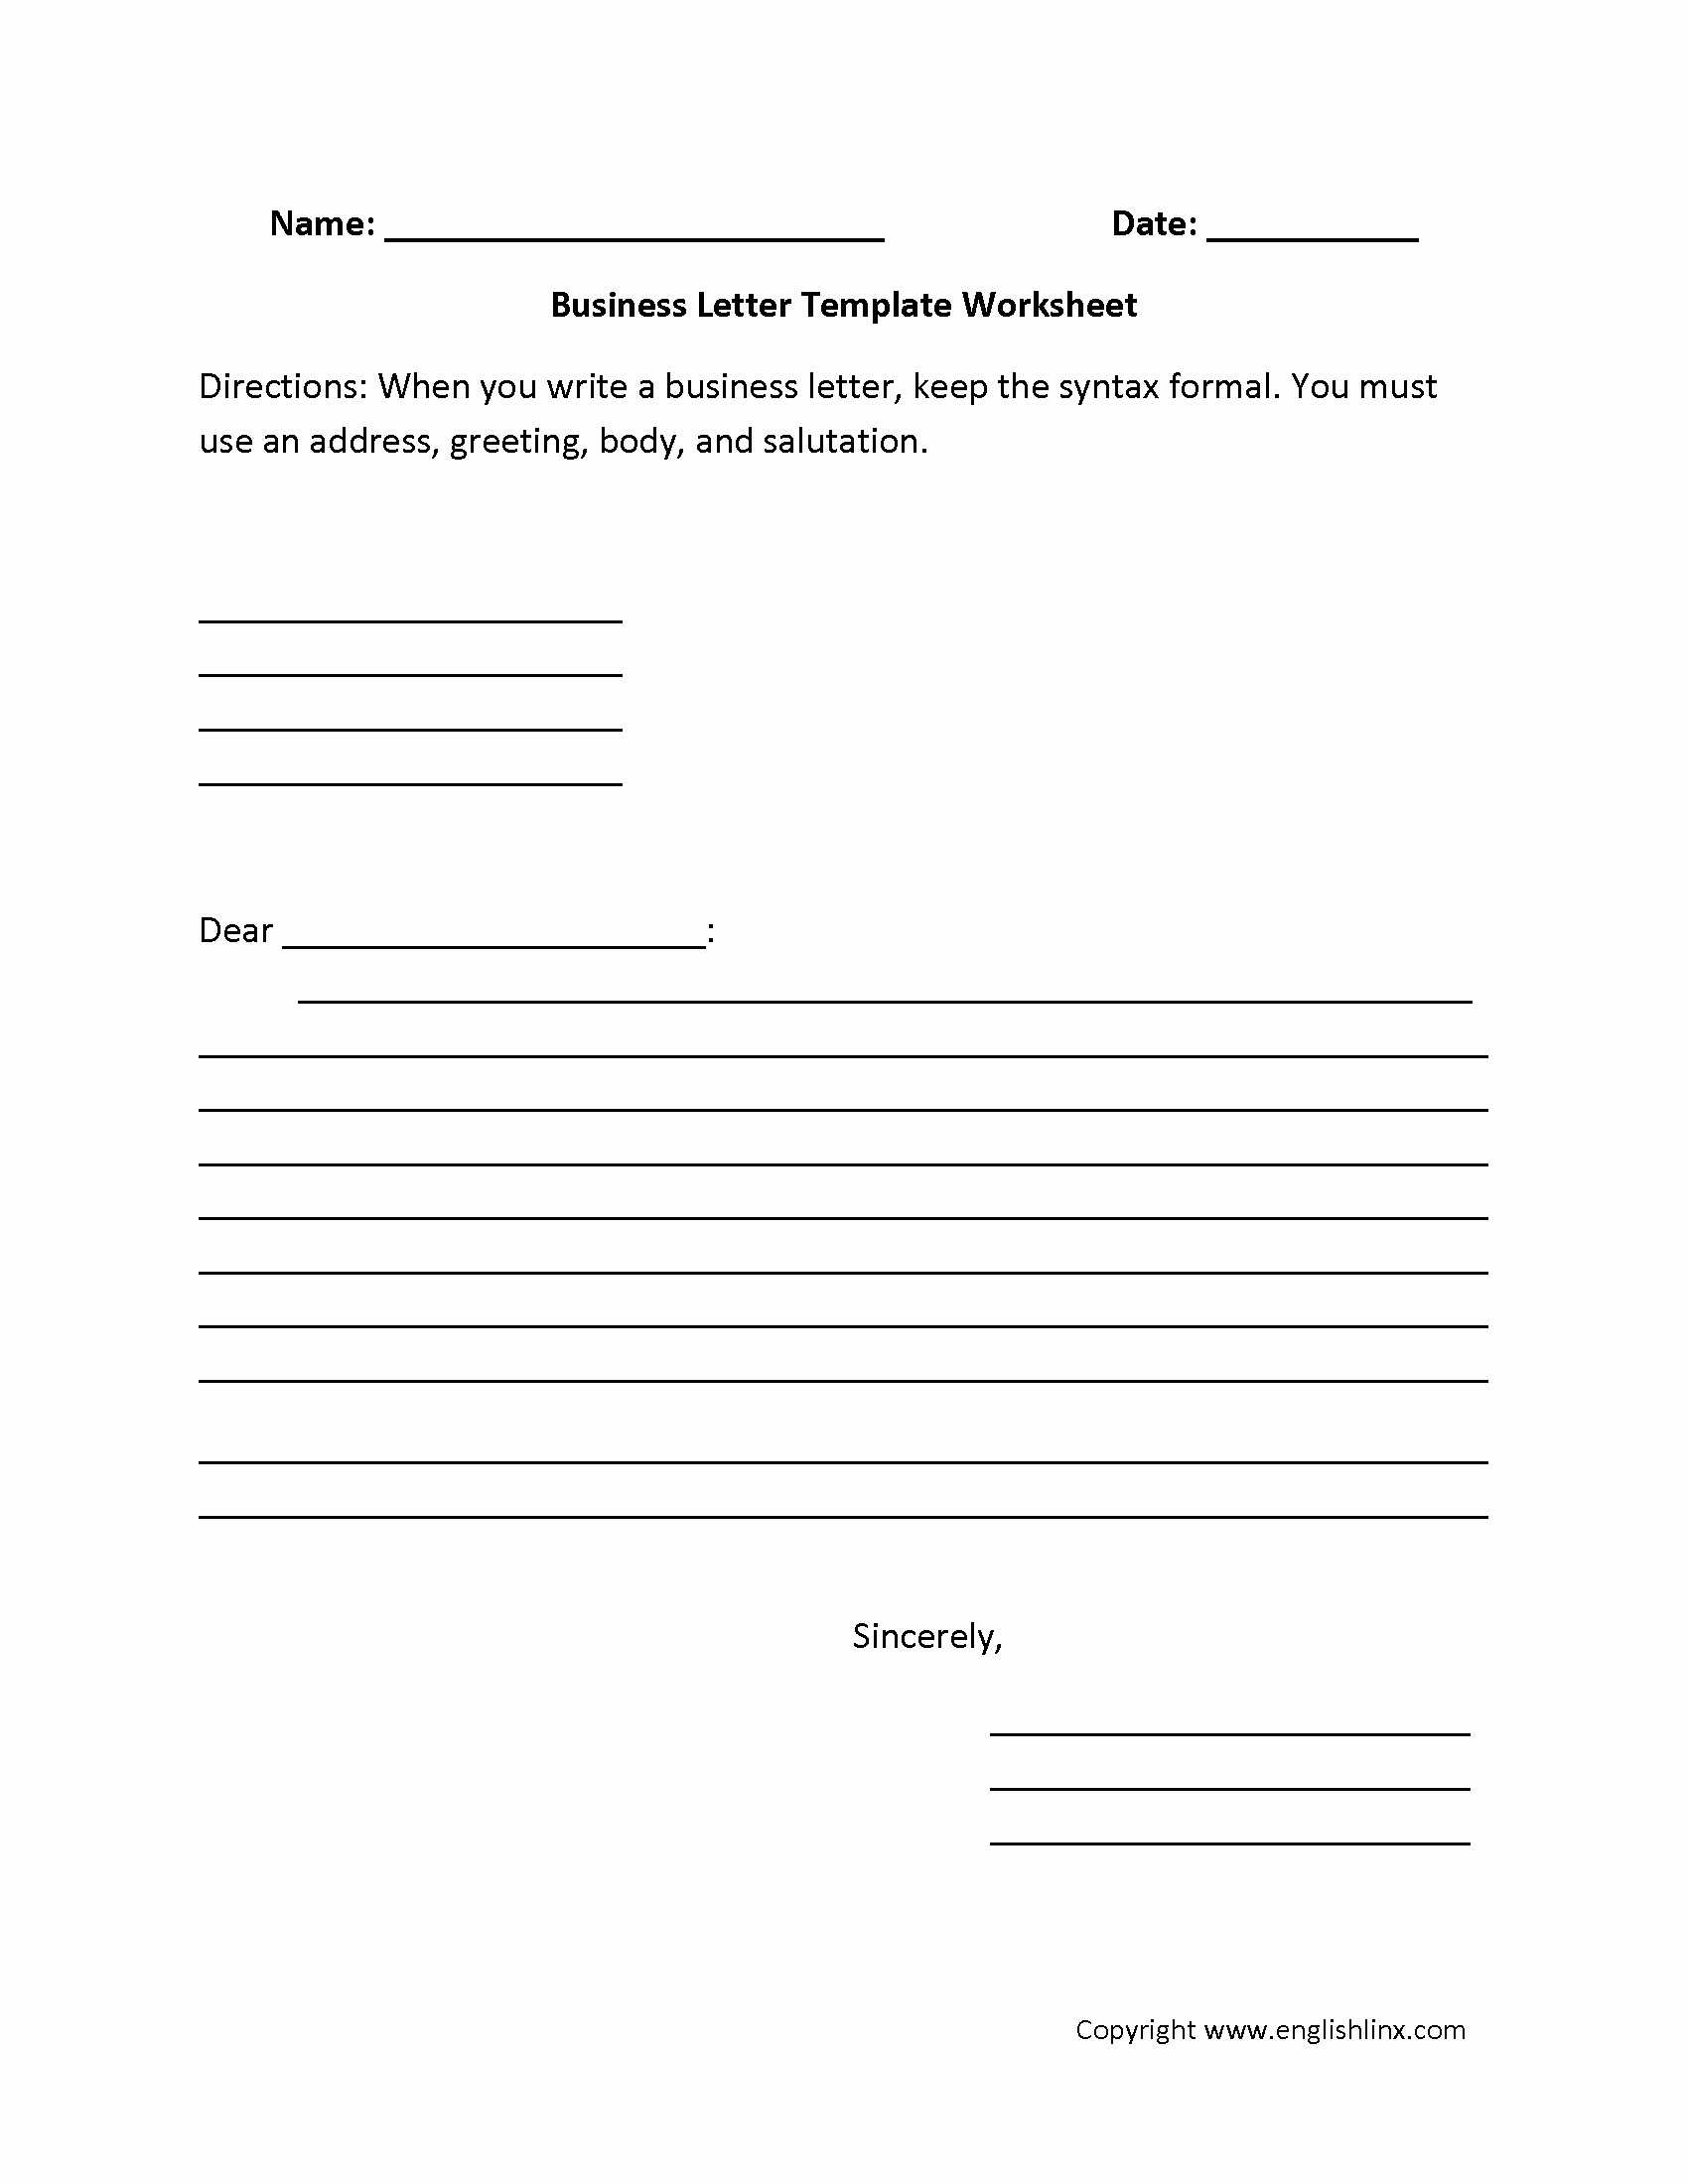 7th Grade Math Word Problems Worksheets and 3rd Grade Math Word Problems Worksheets Pdf Lovely Worksheets for